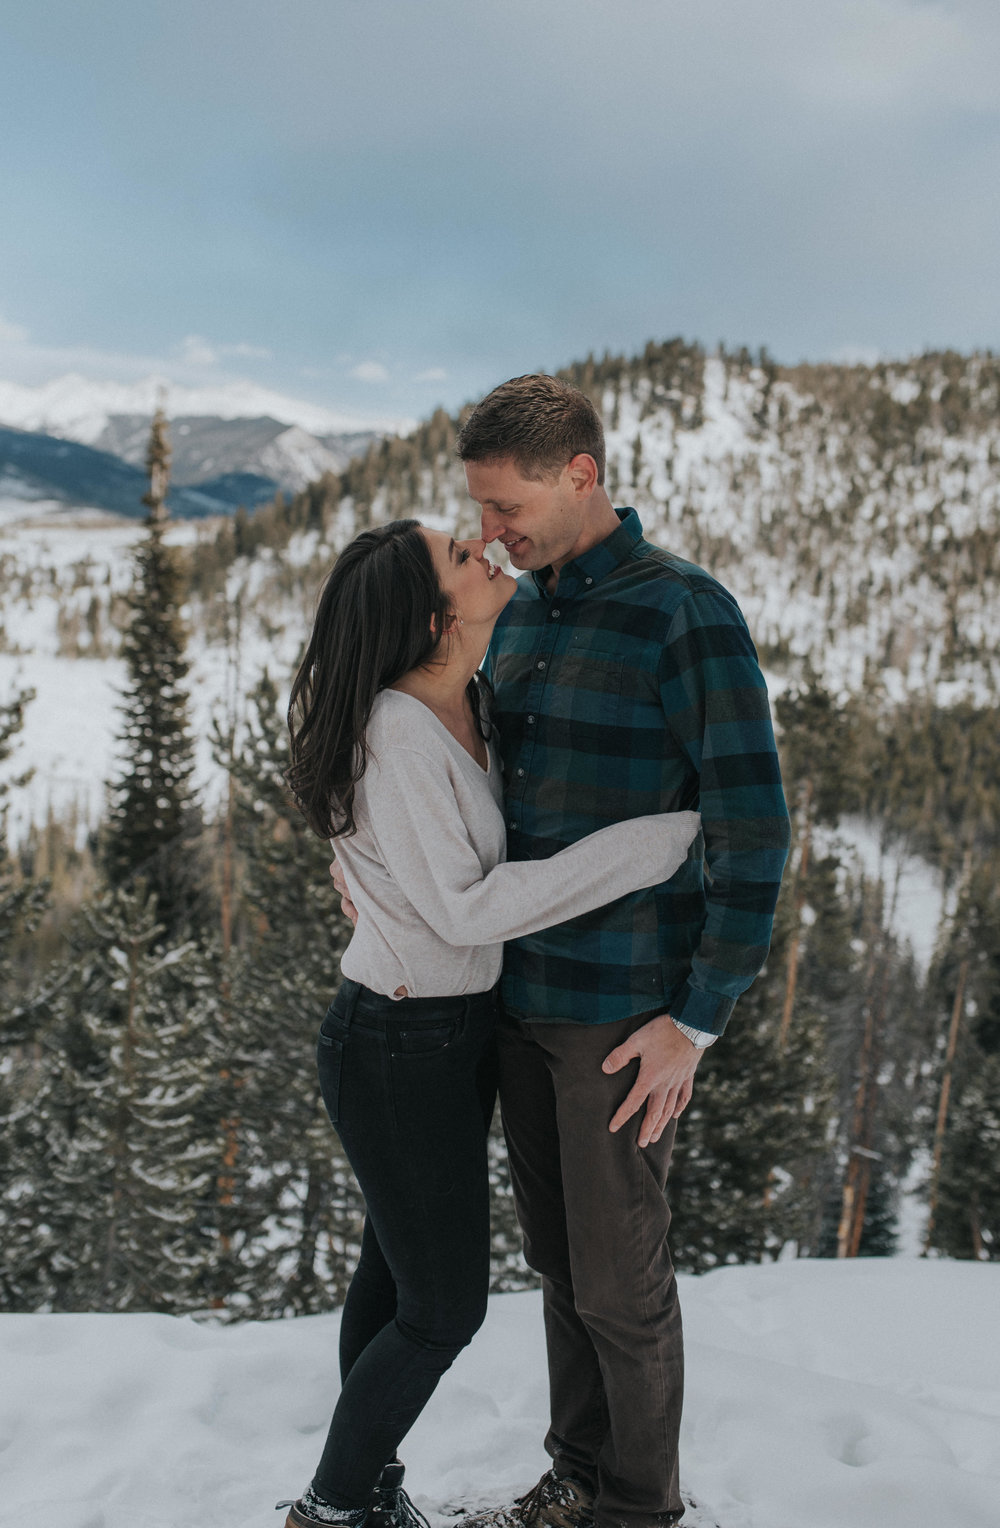 Engagement photos in the Colorado Rocky Mountains.